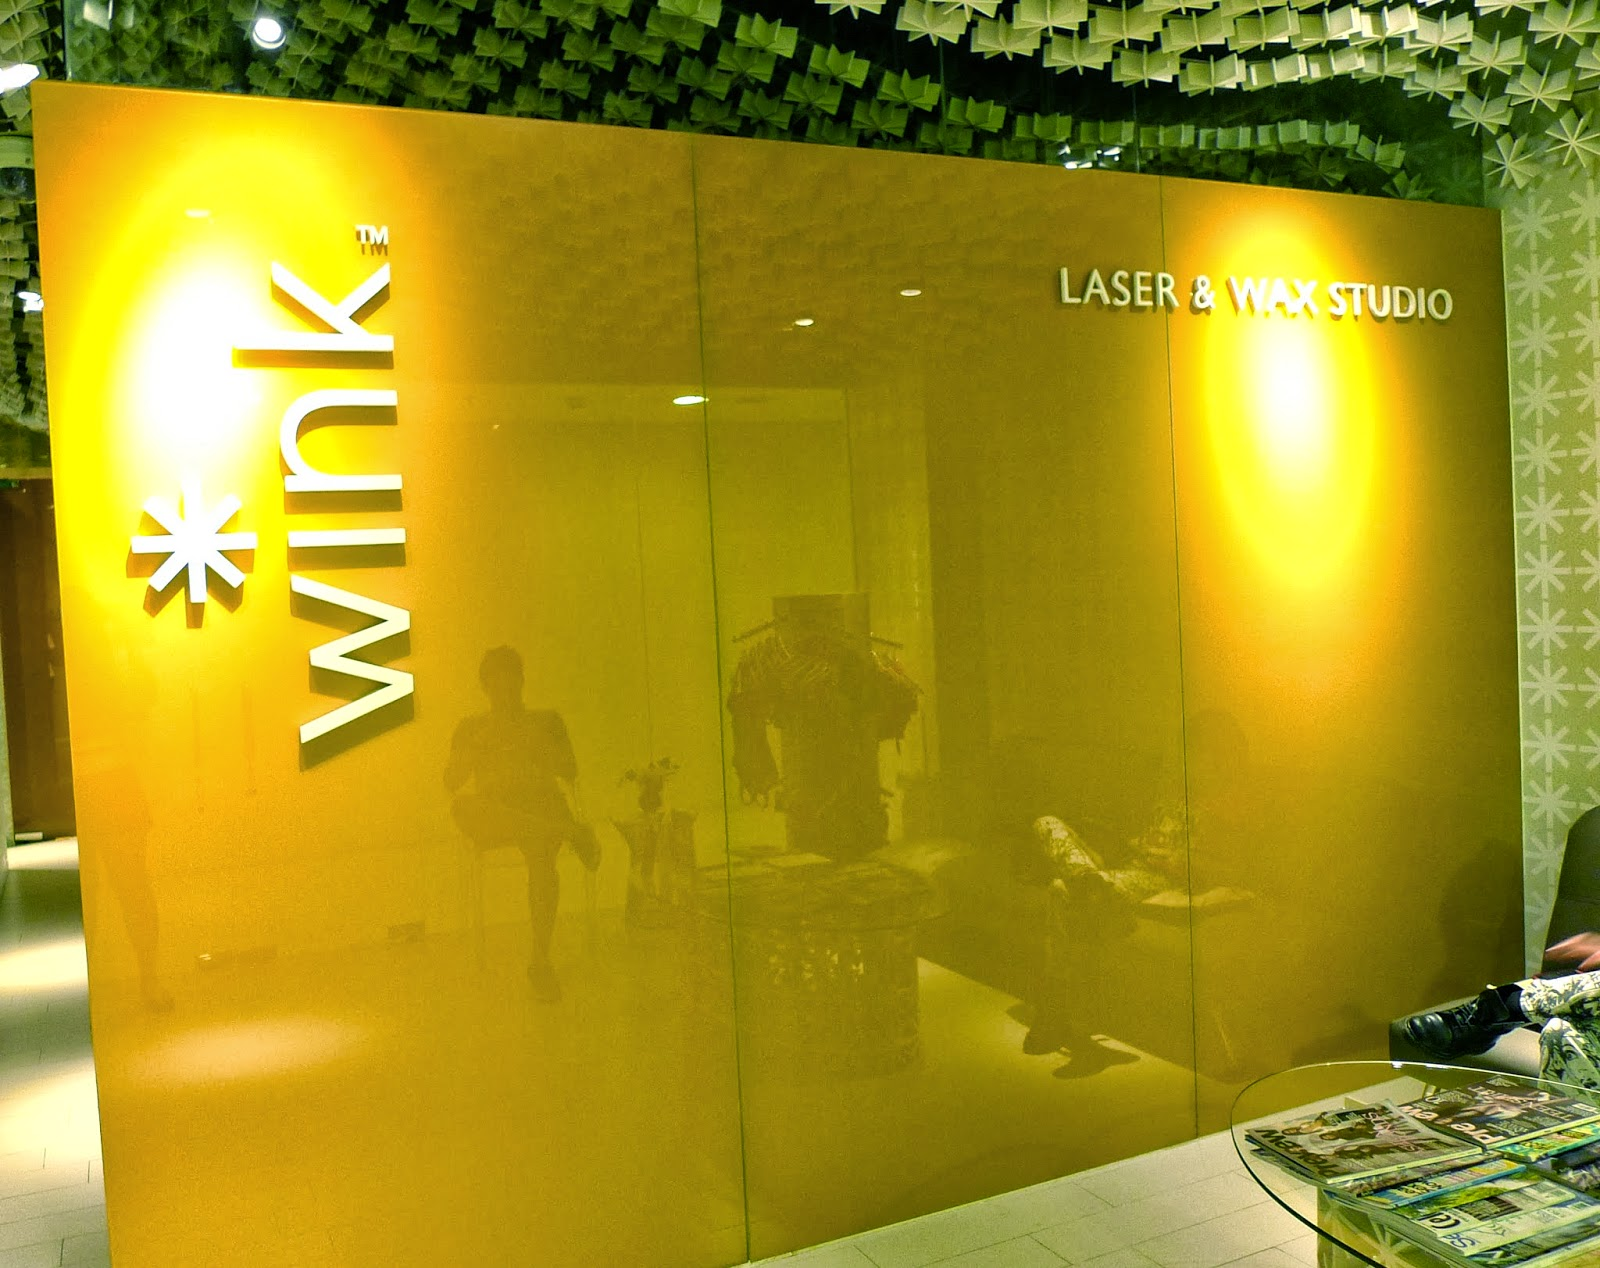 Brazilian Laser Hair Removal at Wink Laser and Wax Studio ...